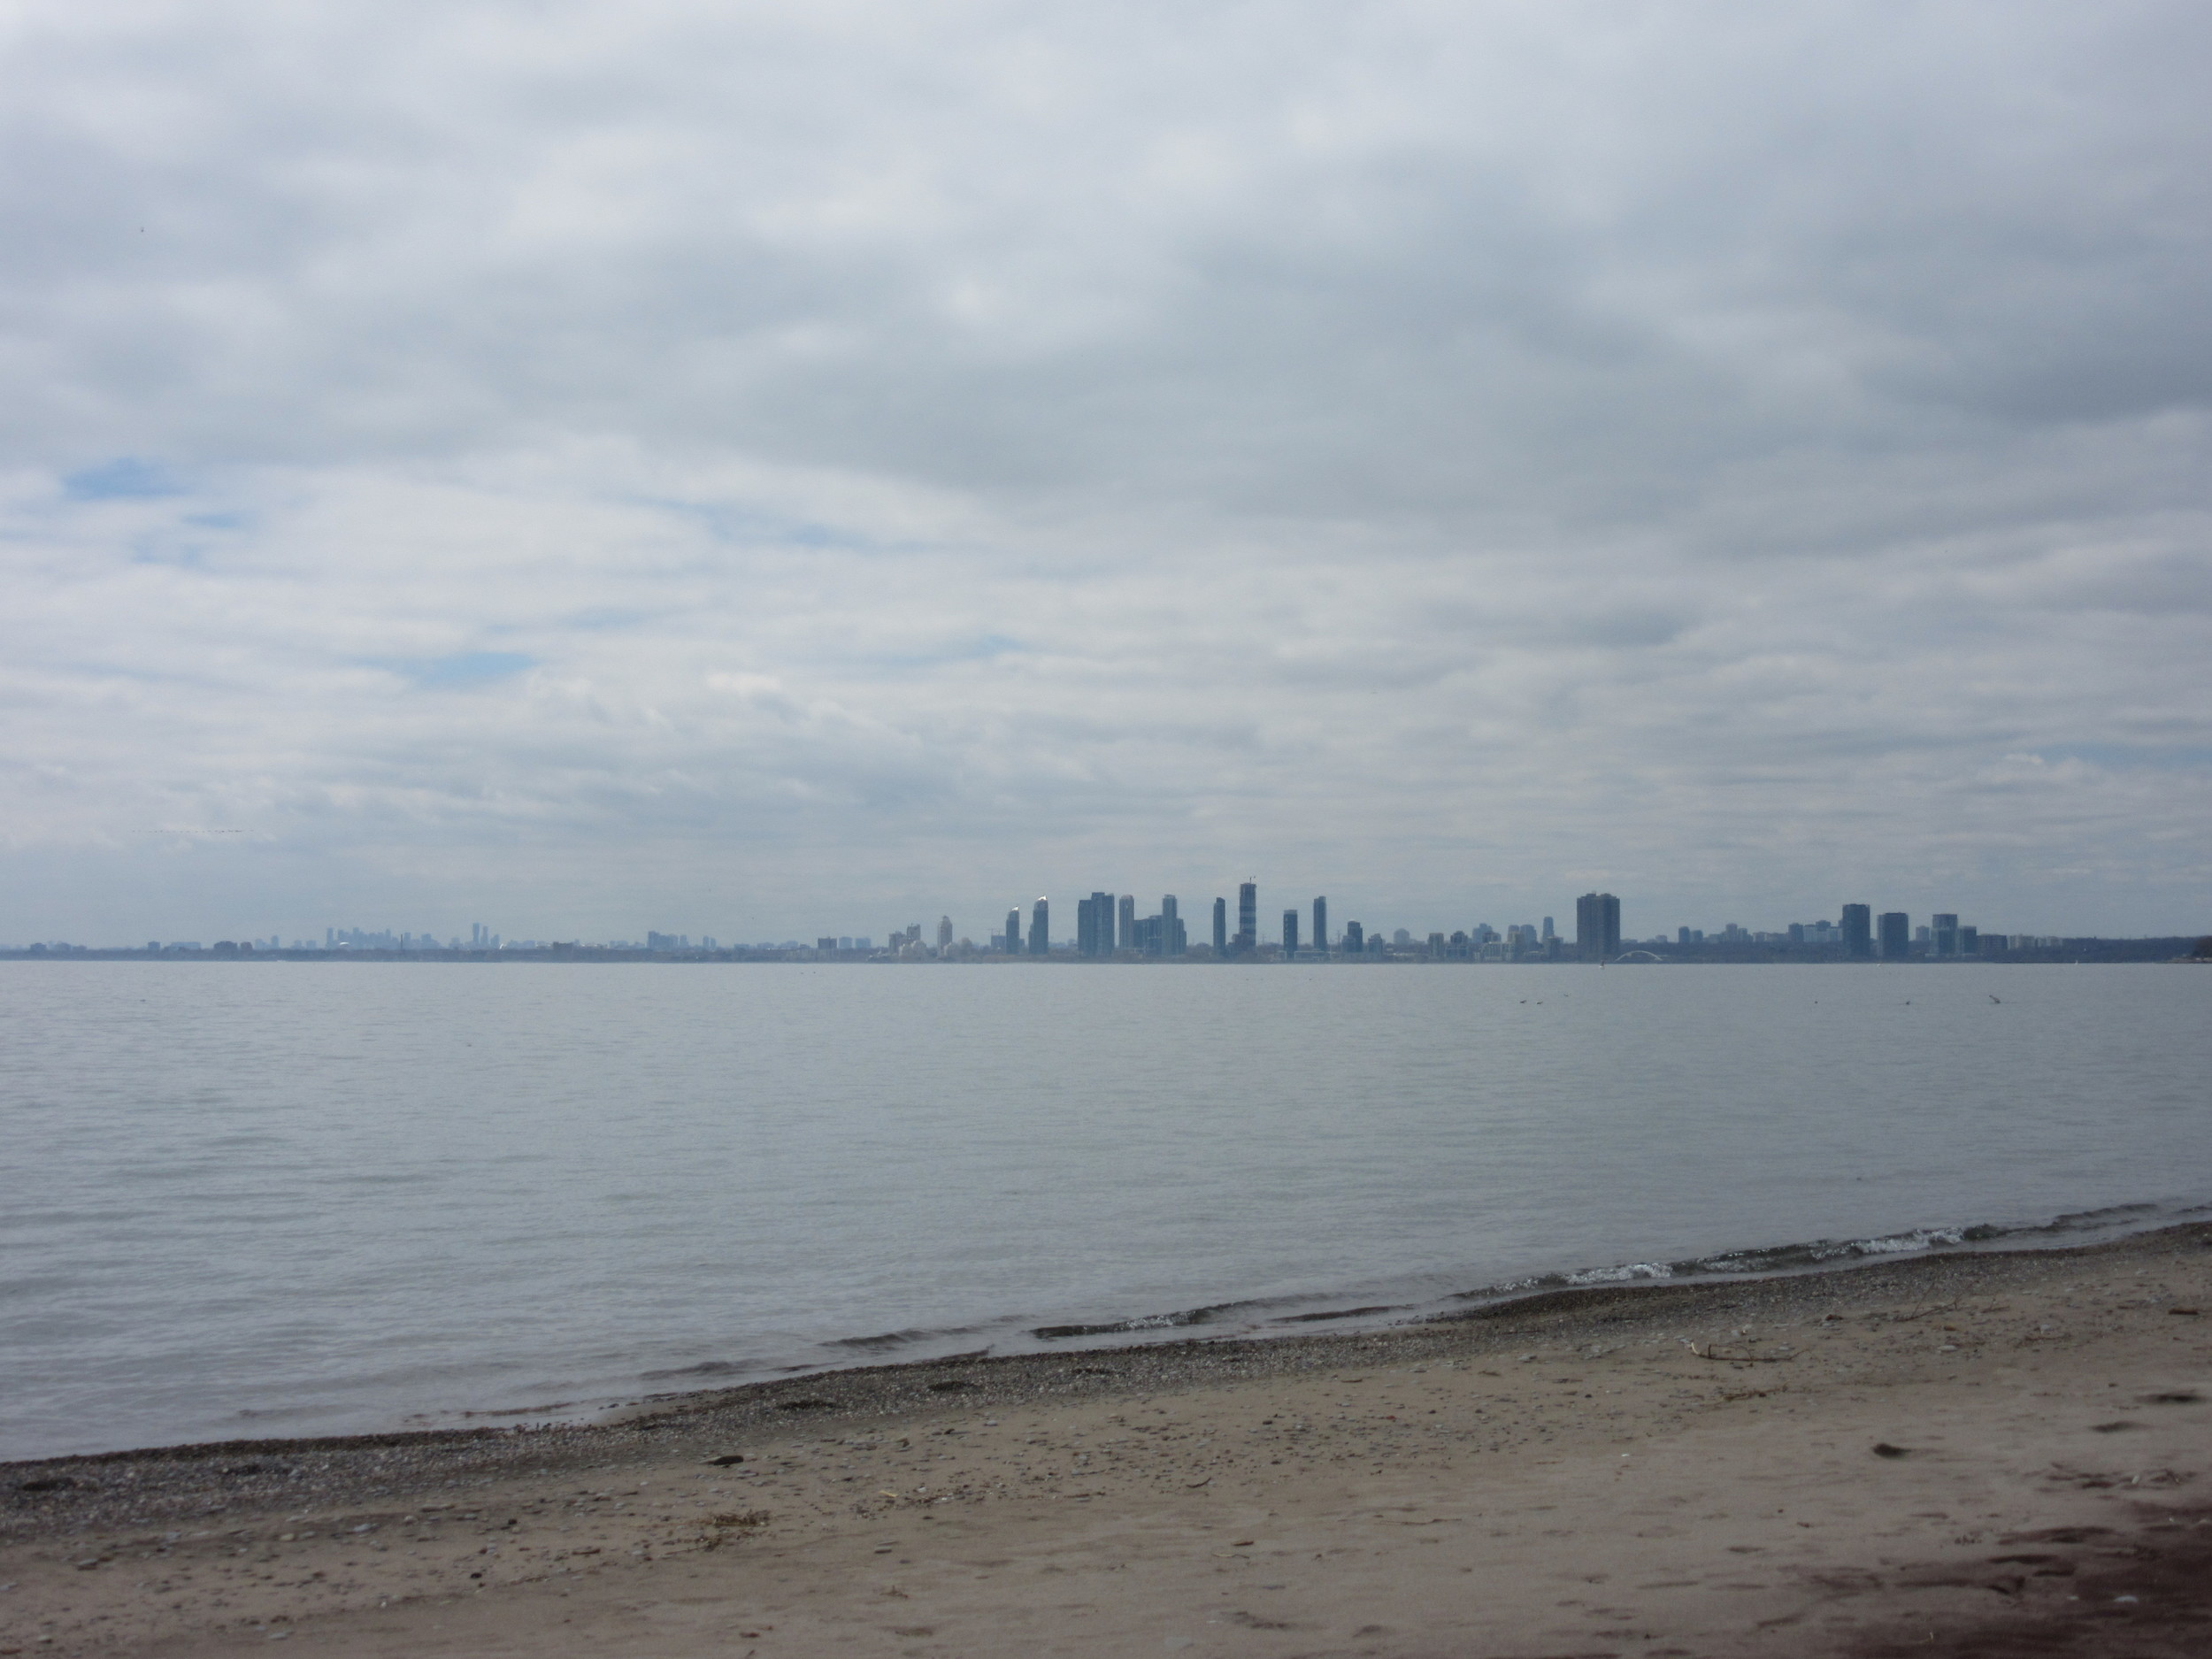 Beaches on Toronto Islands